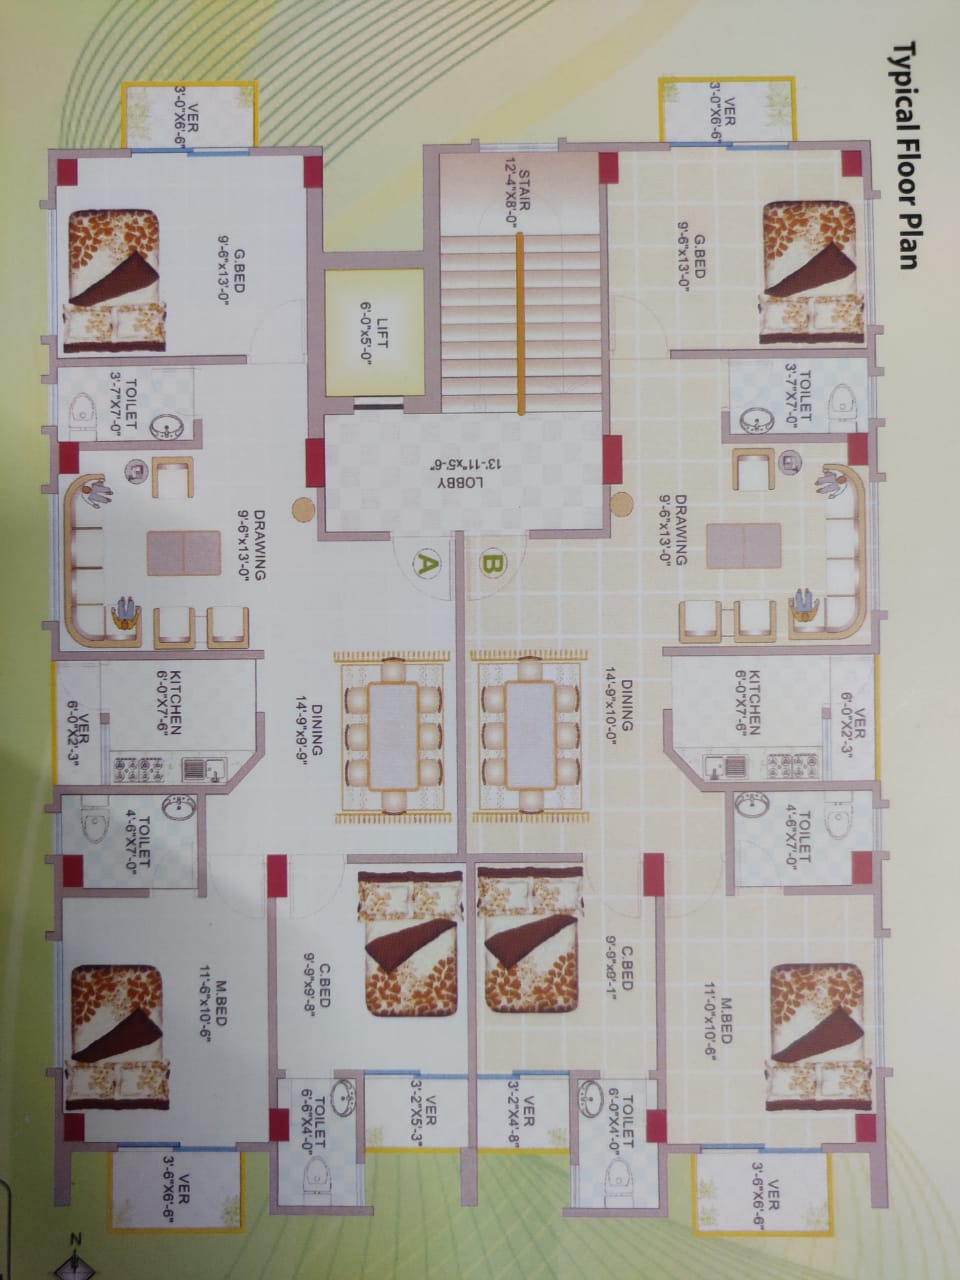 2300-sft-apartment-for-sale-at-bashundhara-6th-floor-269525